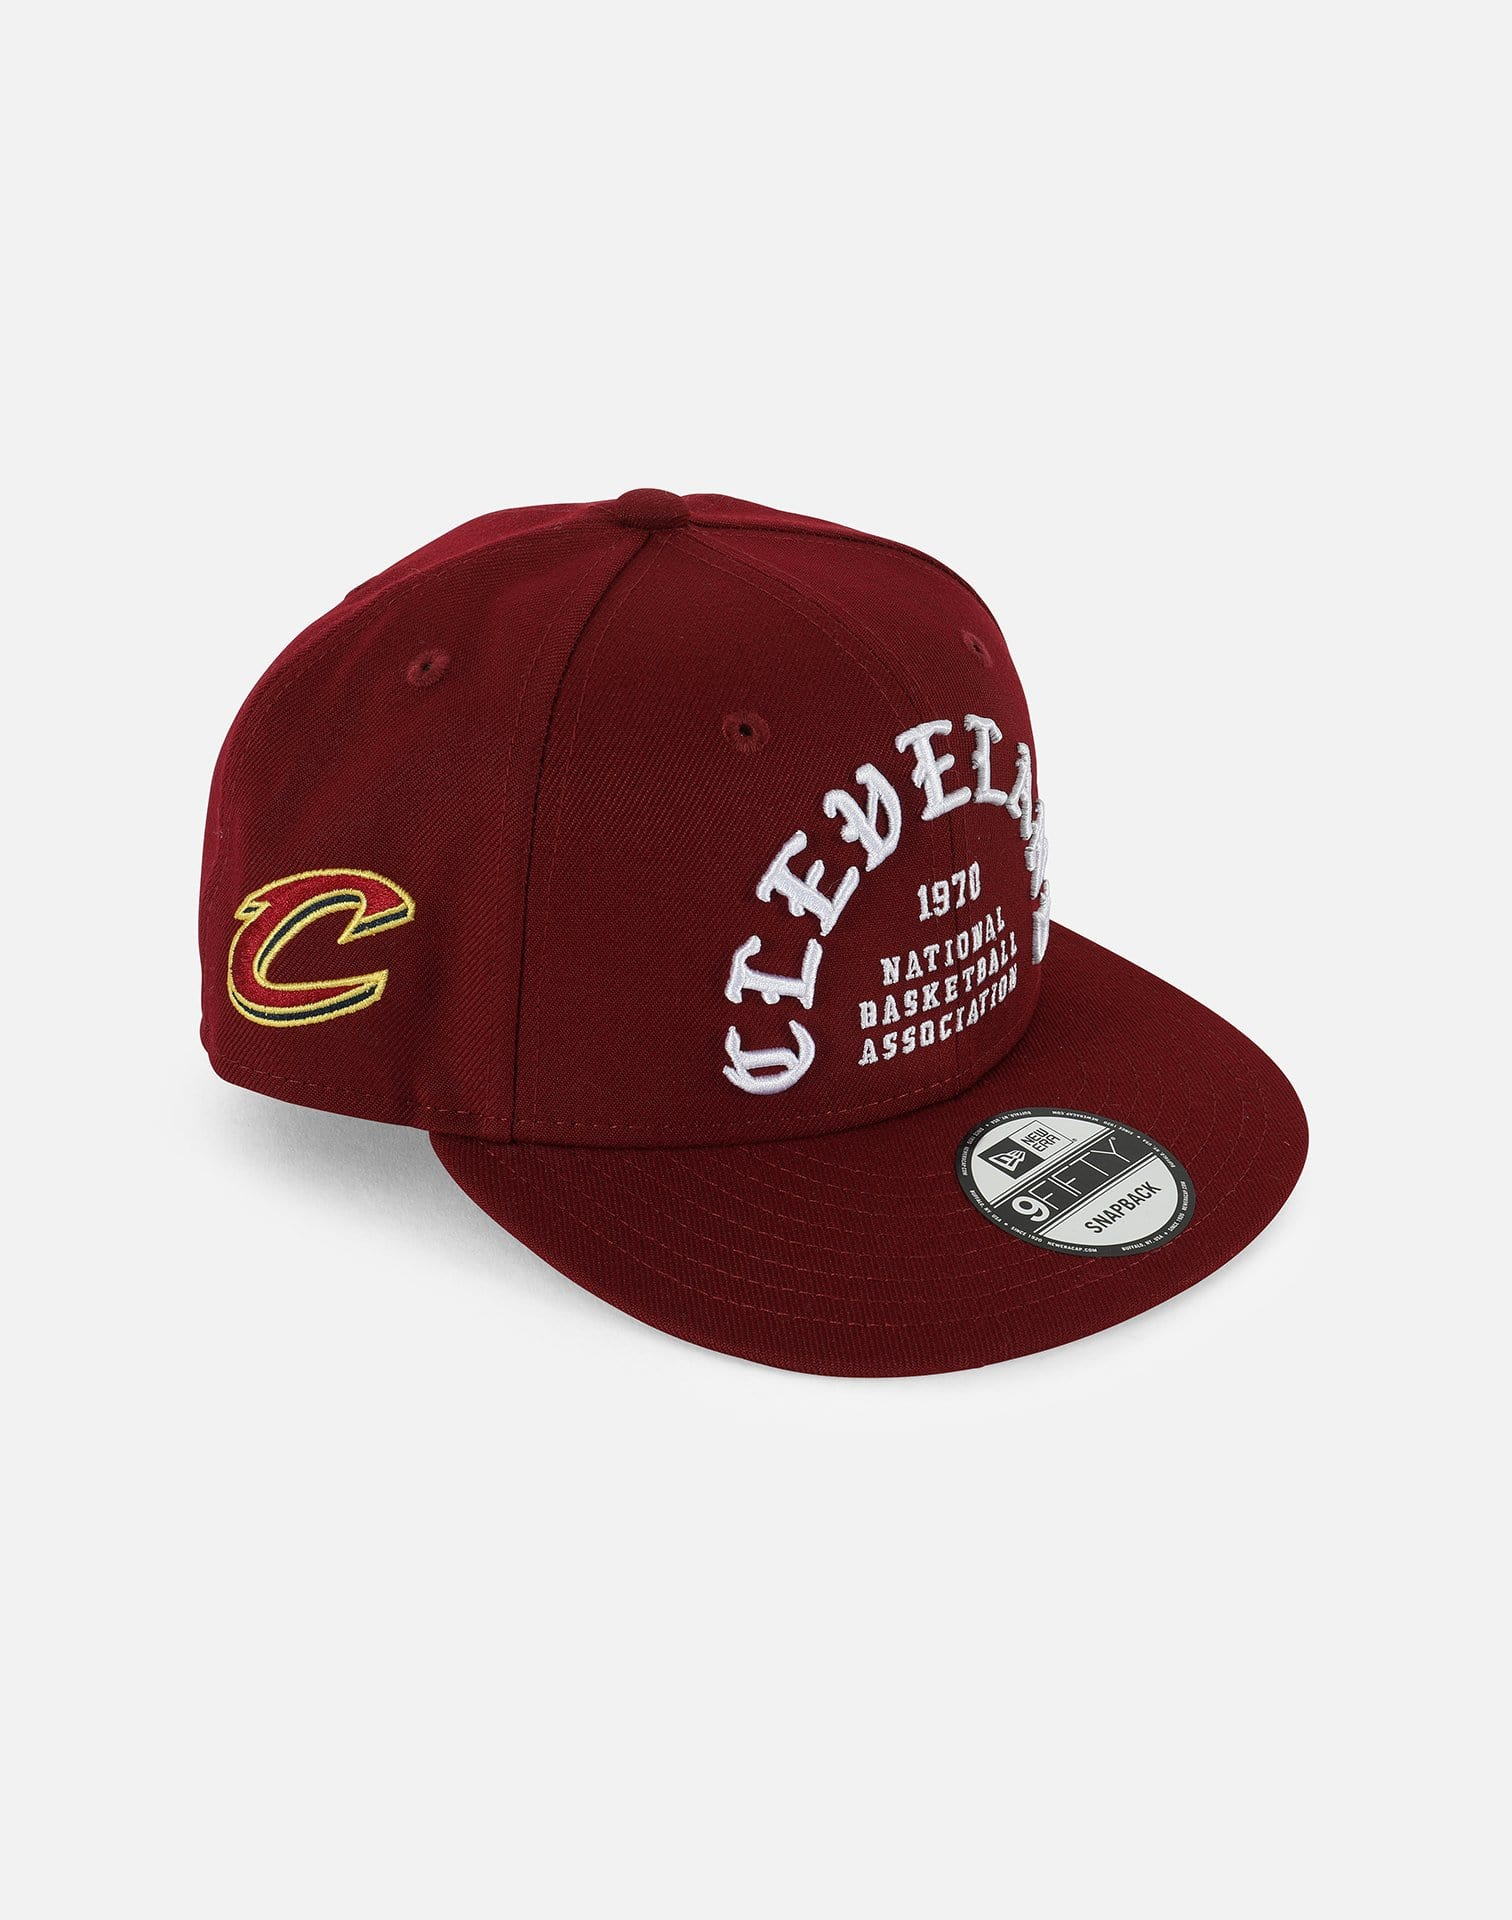 New Era NBA Cleveland Cavaliers Team Deluxe 950 Snapback Hat